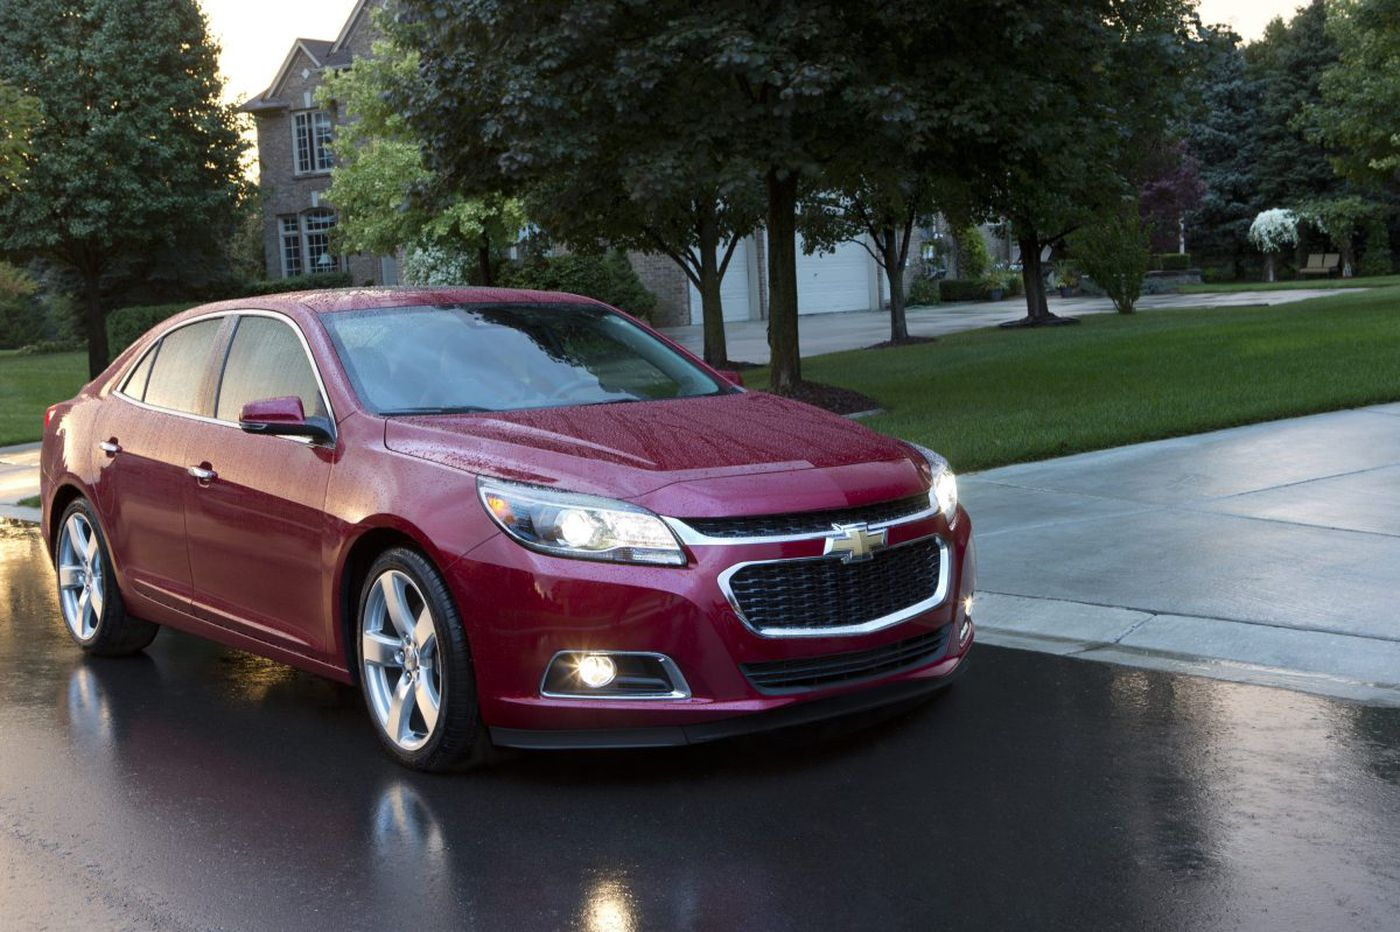 The 2015 Chevrolet Malibu makes for a great off-lease car